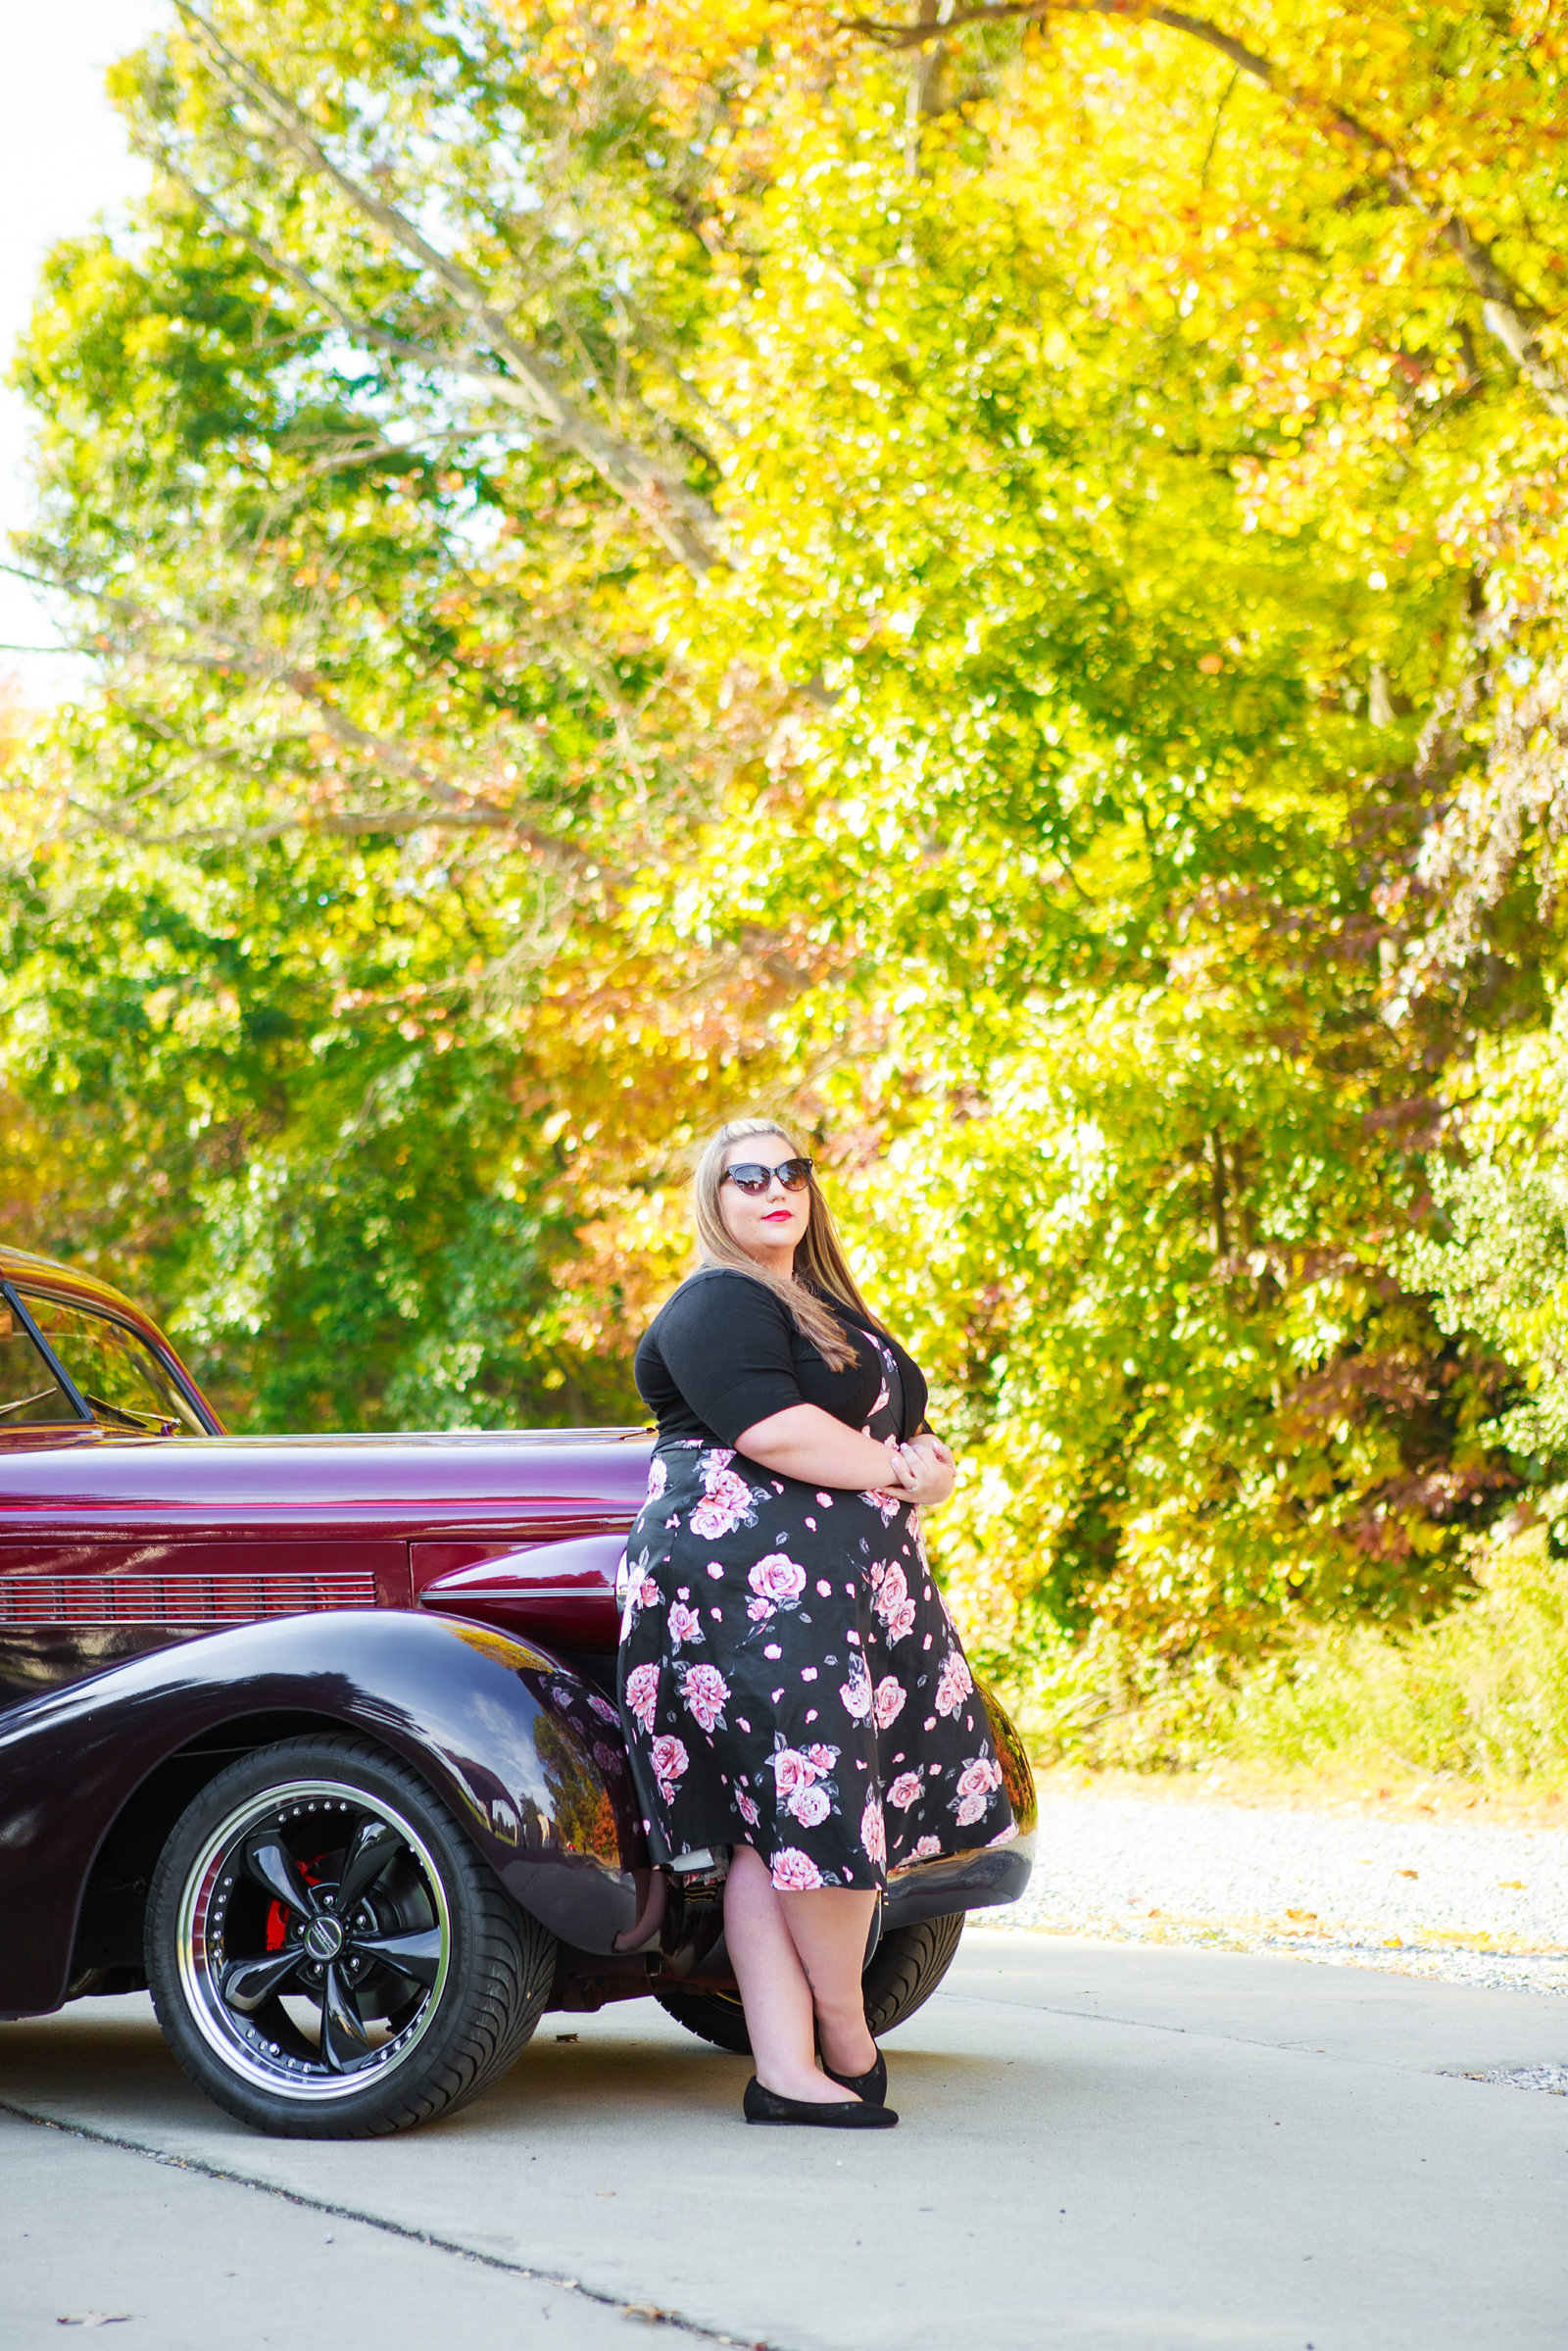 Retro_Pinup_Car_engagement_session_Nj019